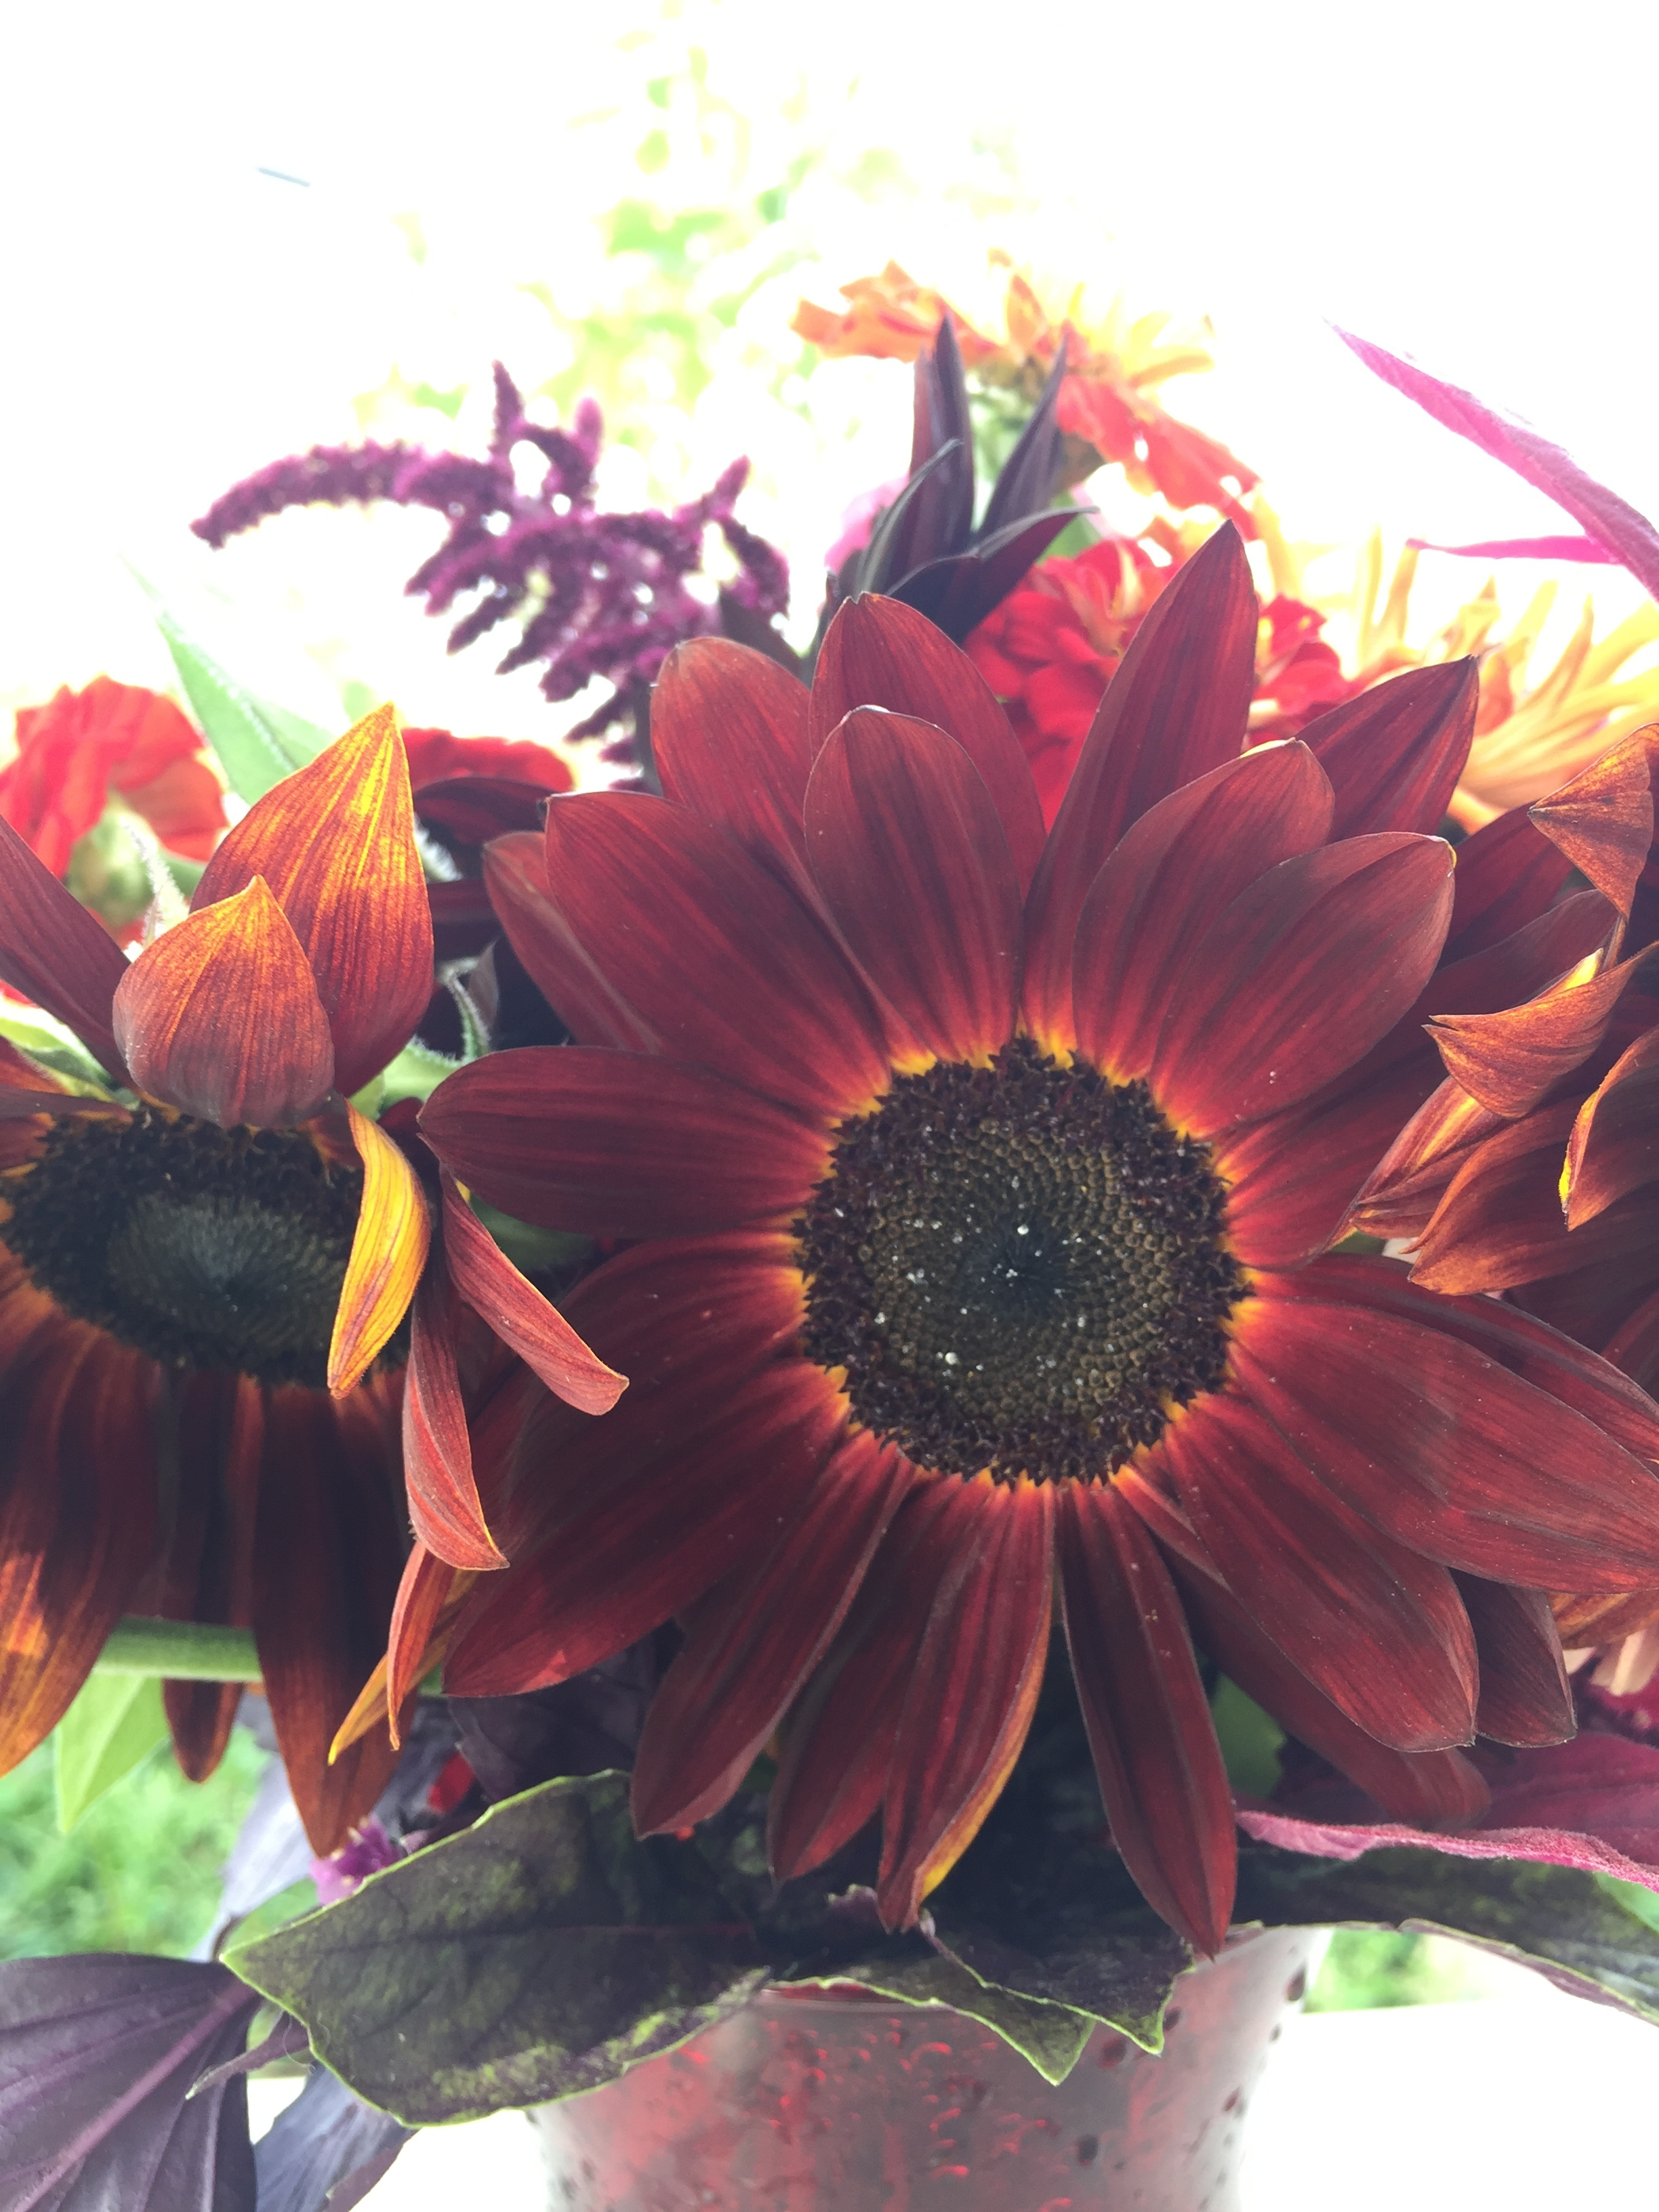 The deepest brown sunflowers are best enjoyed in person - even with a flash we can't really catch that glow!